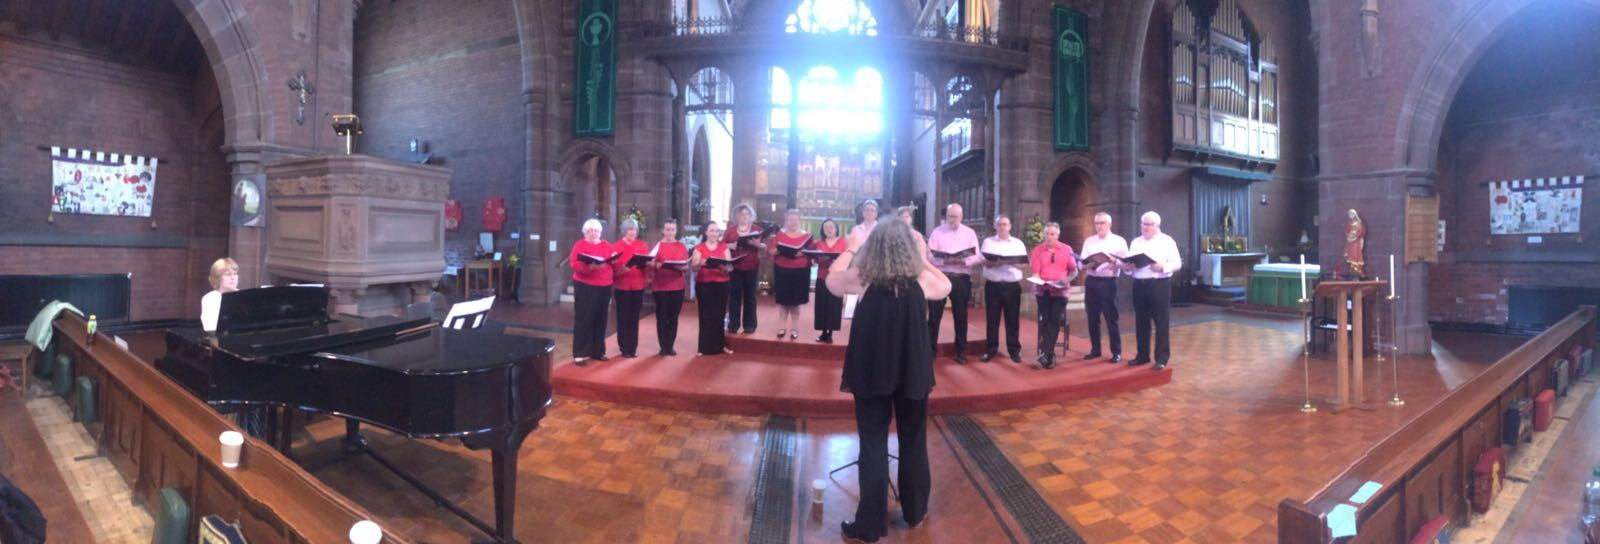 Liverpool BID Choir